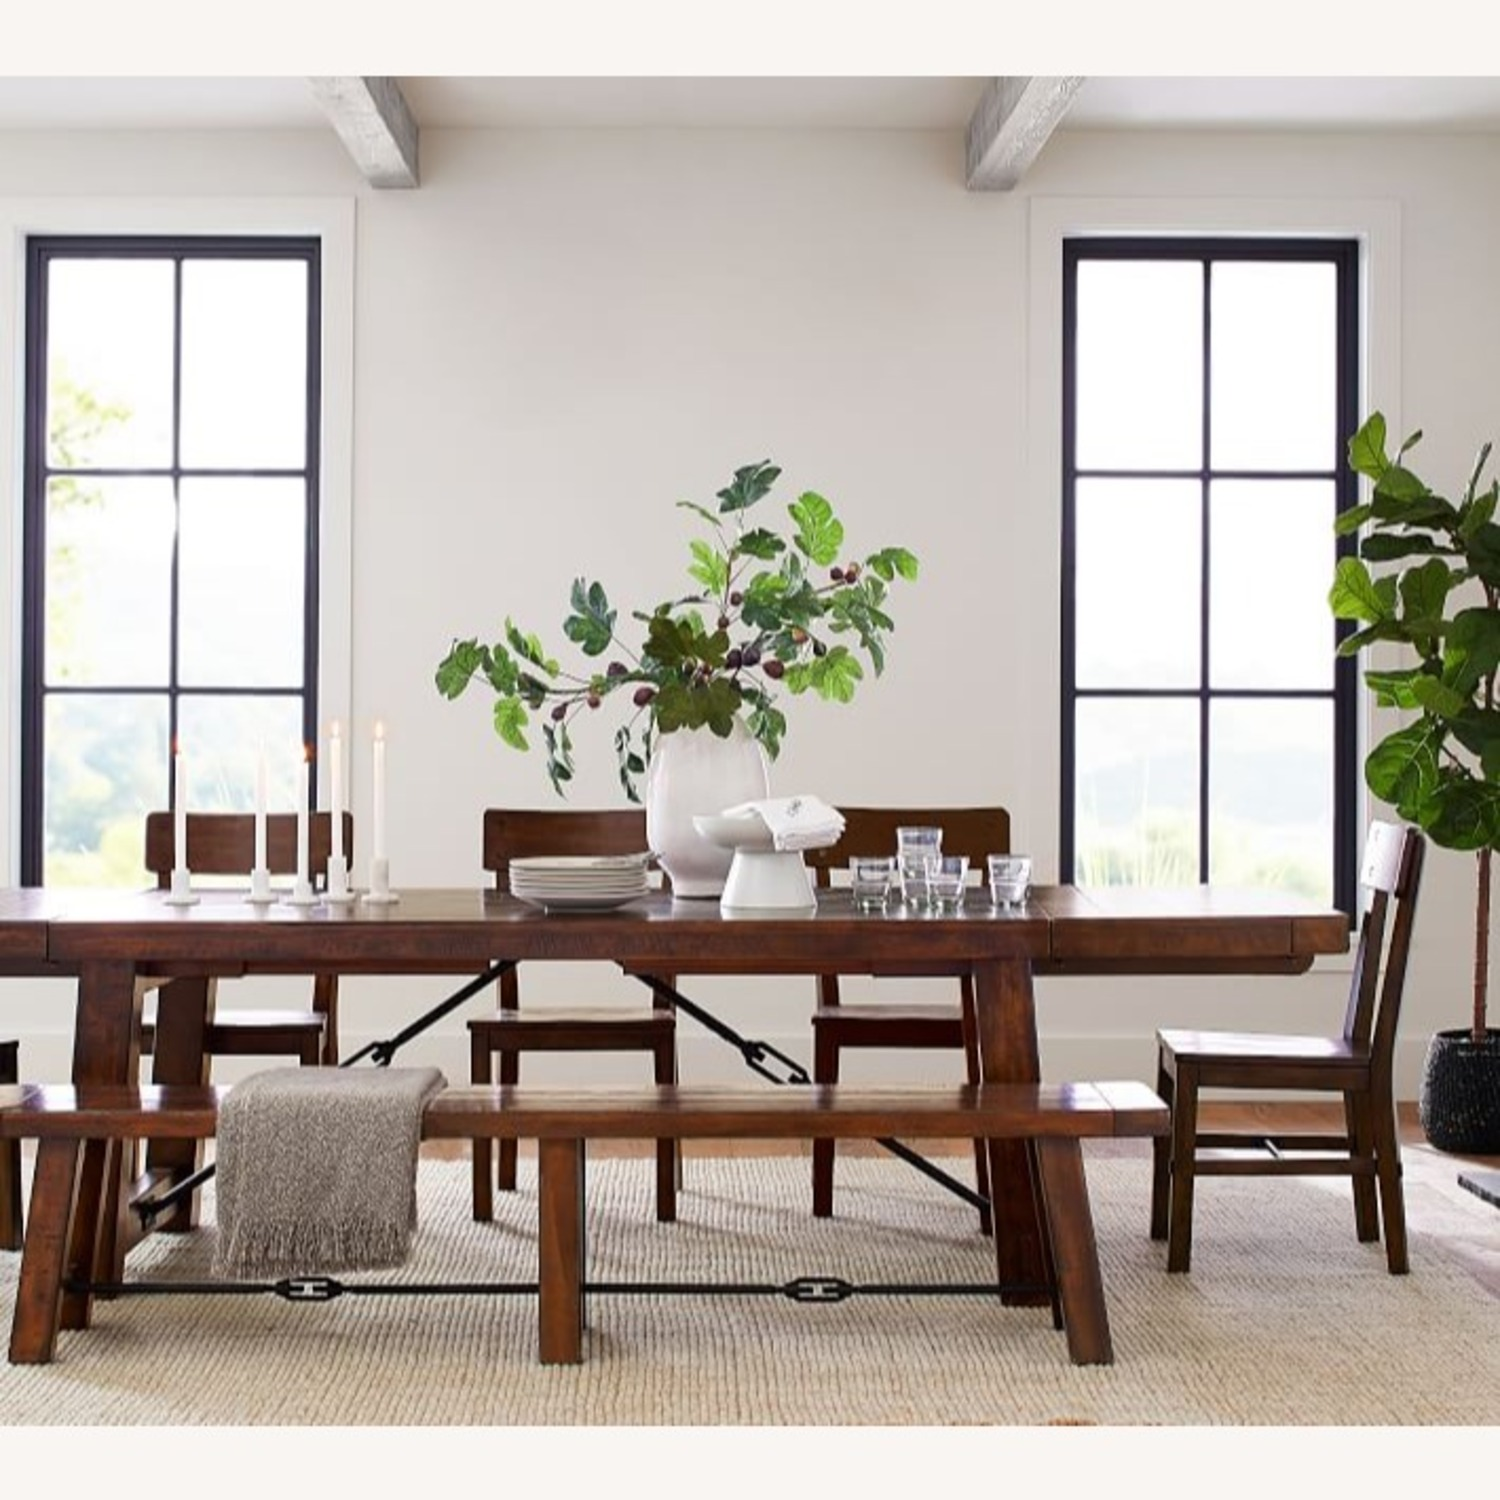 Pottery Barn Distressed Wood Rustic Table and Benches - image-2